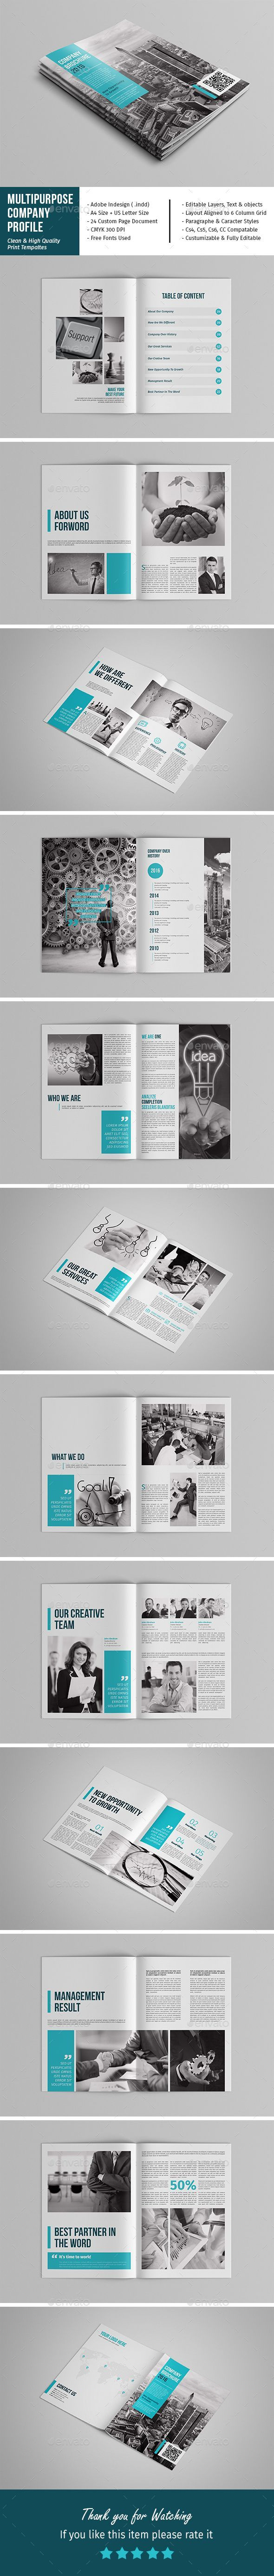 40 best Templates images on Pinterest | Page layout, Editorial ...